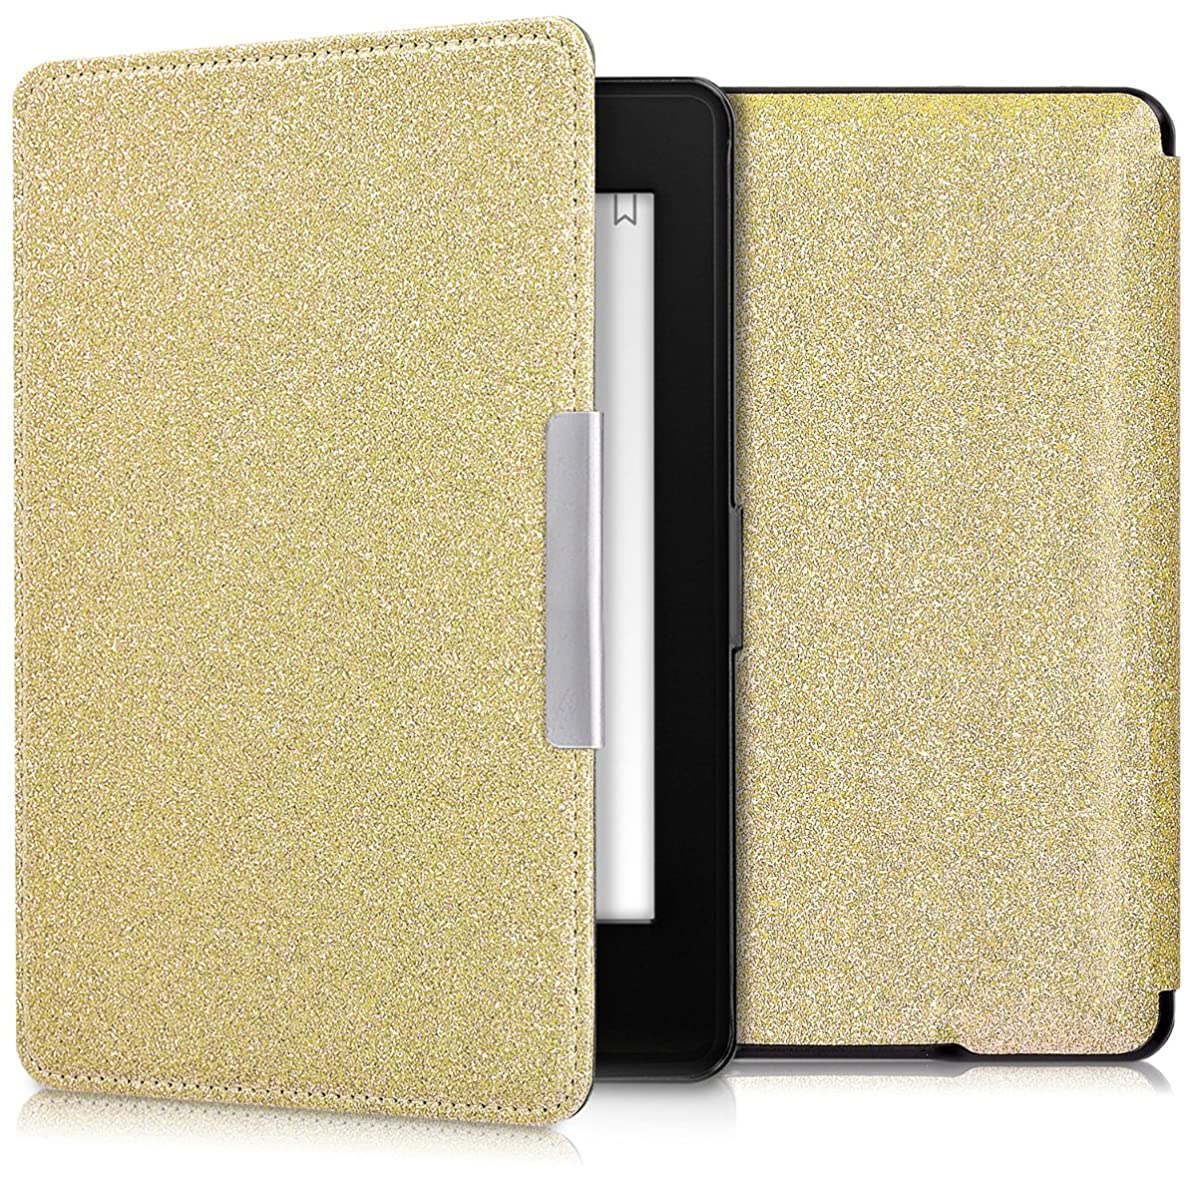 kwmobile Case for Amazon Kindle Paperwhite - Book Style Protective e-Reader Flip Cover Folio Case Shell - (for 2017 and Older) Gold